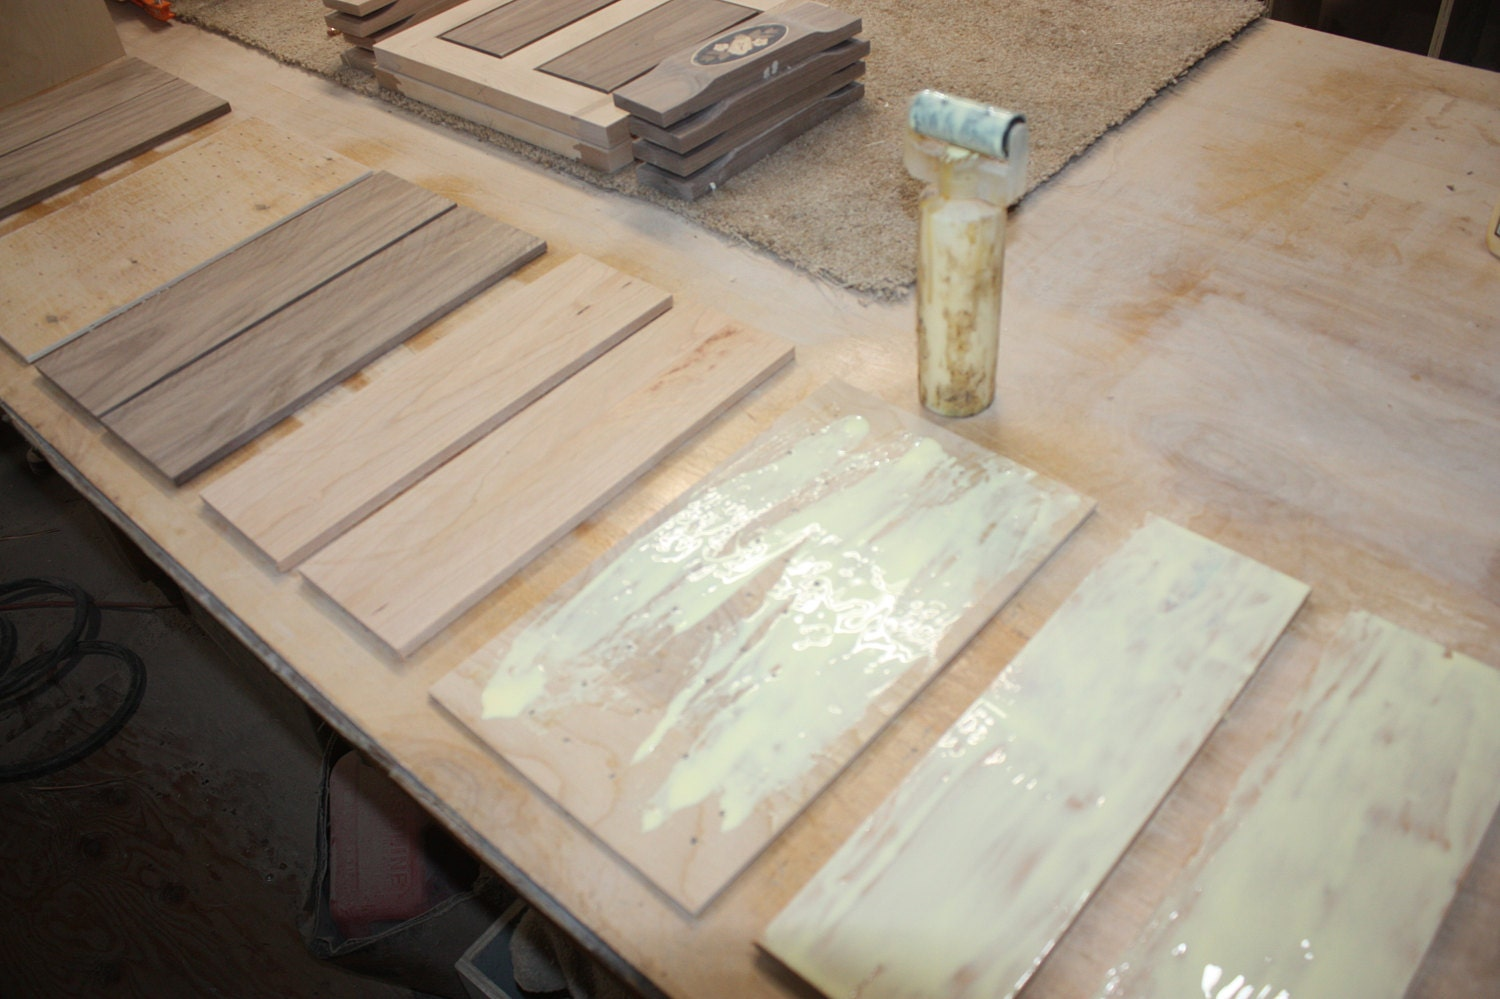 Gluing up Lids for Jewelry Boxes